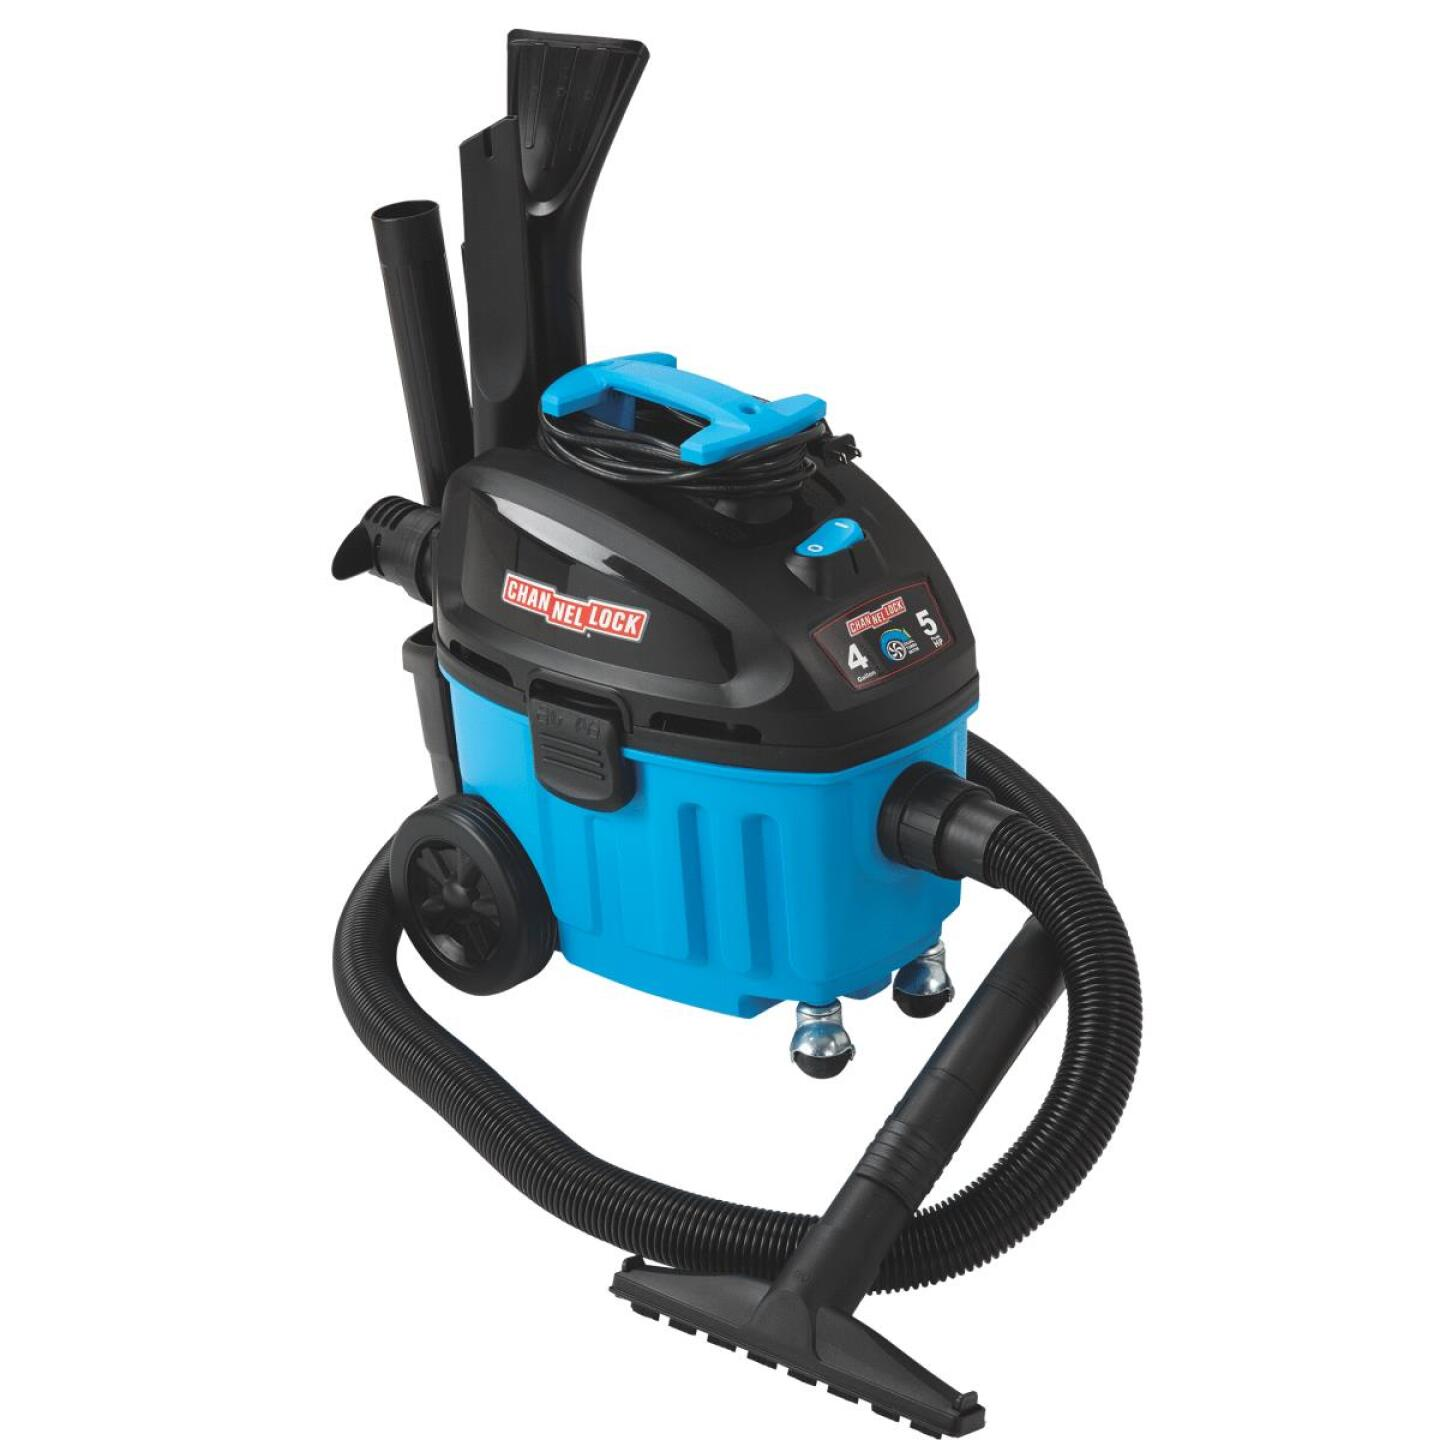 Channellock 4 Gal. 5.0-Peak HP Contractor Wet/Dry Vacuum Image 1